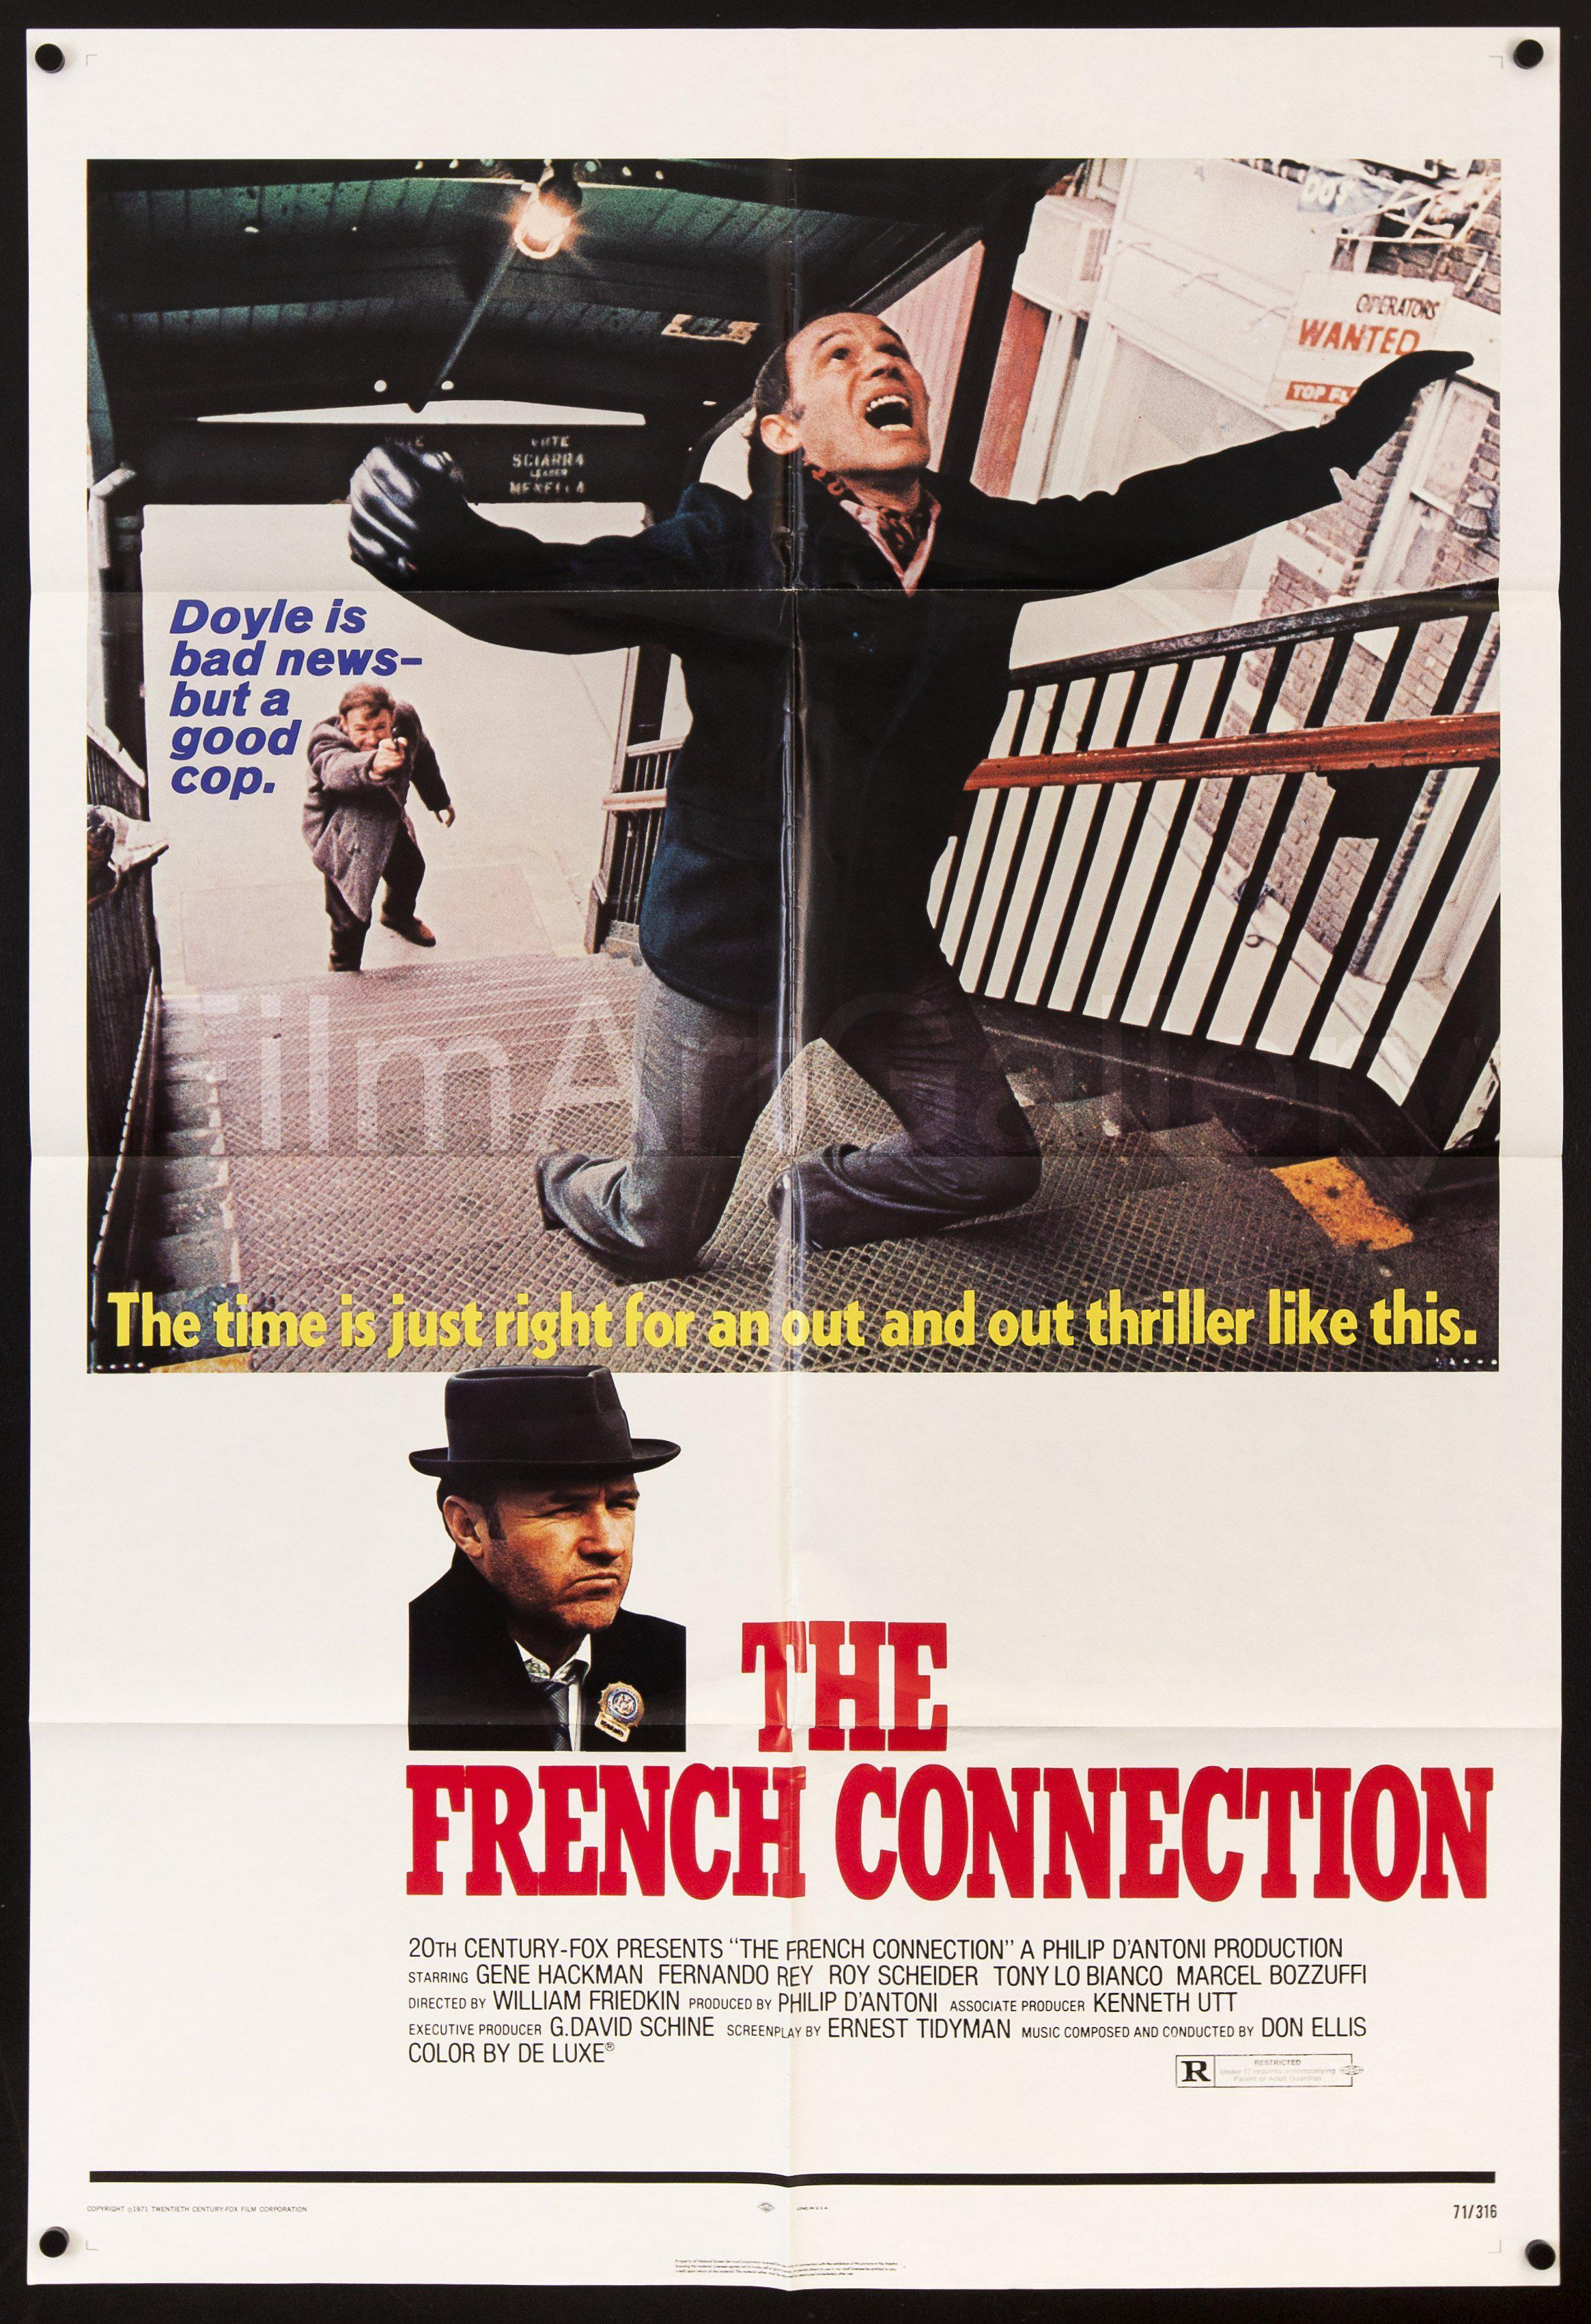 The French Connection 1 Sheet (27x41) Original Vintage Movie Poster